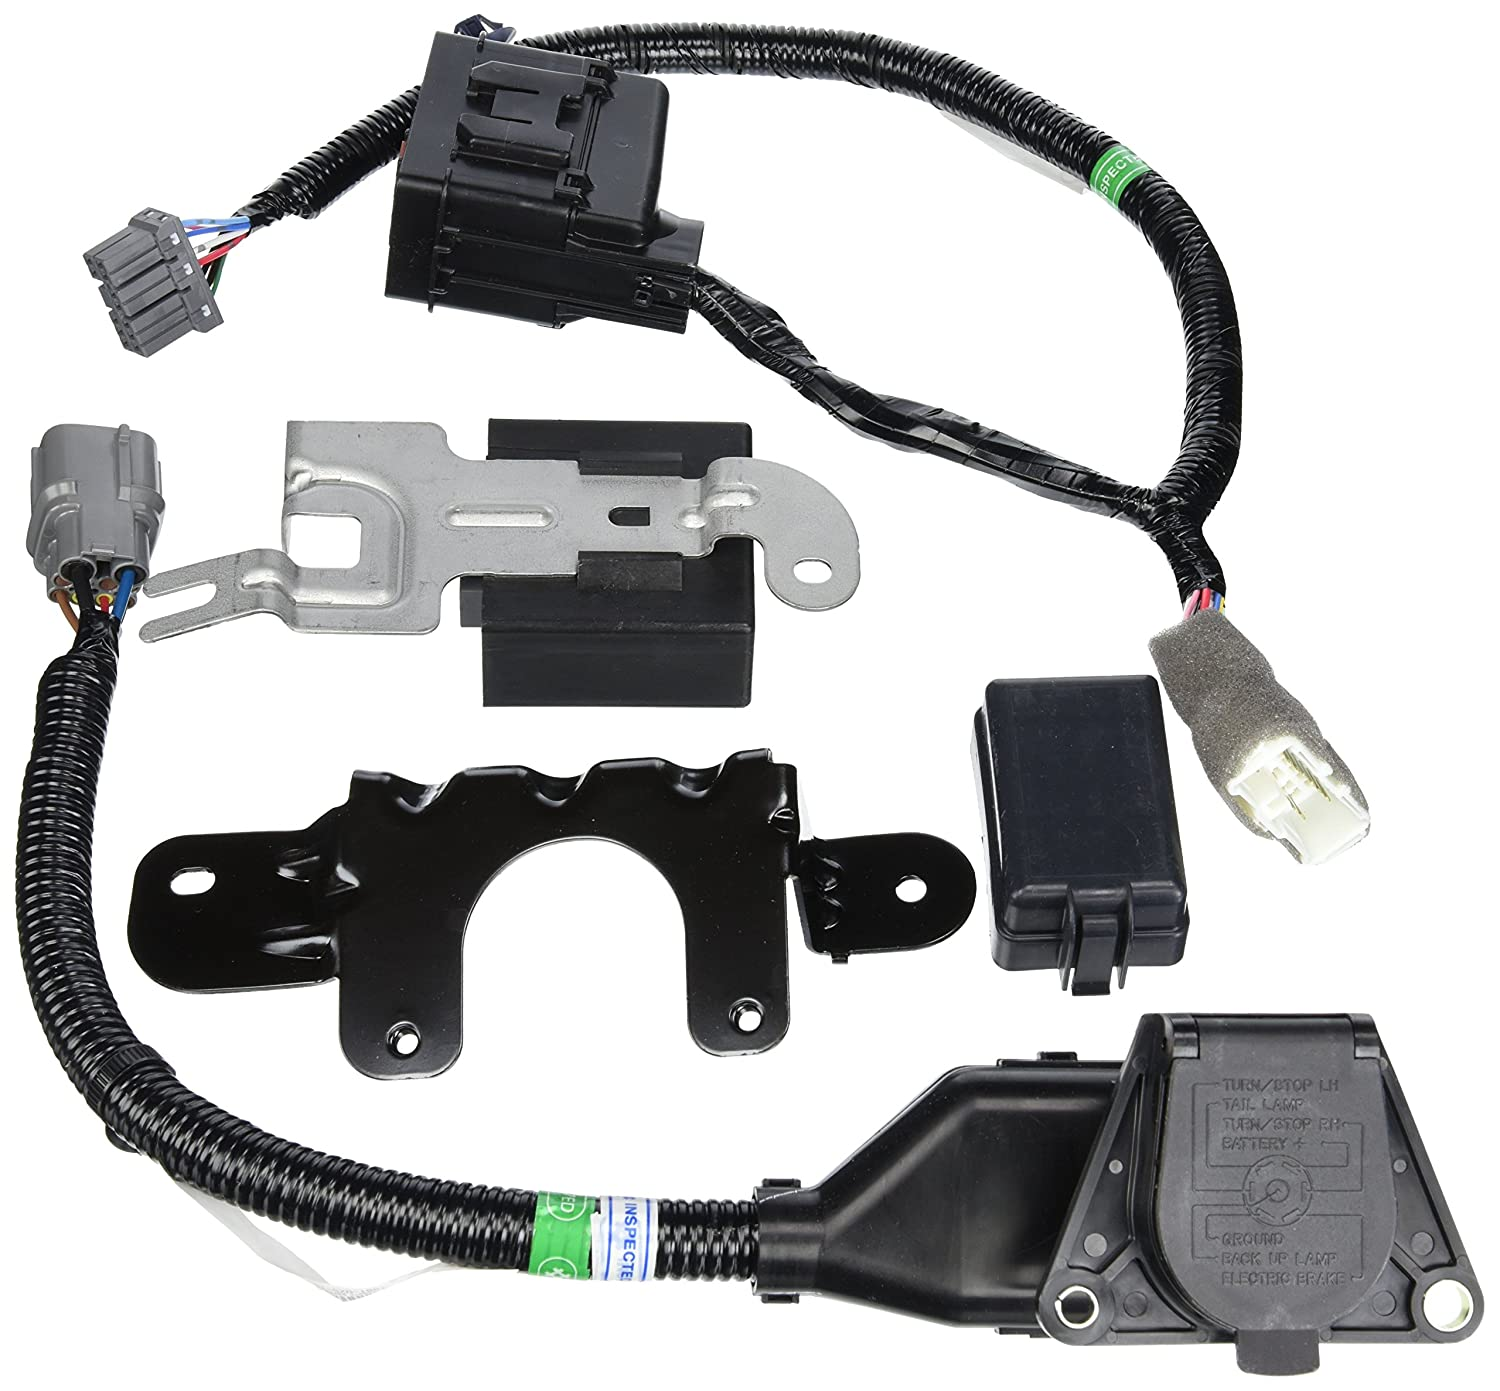 2010 Honda Pilot Oem Trailer Wiring Harness : Trailer hitch harness wiring diagram images